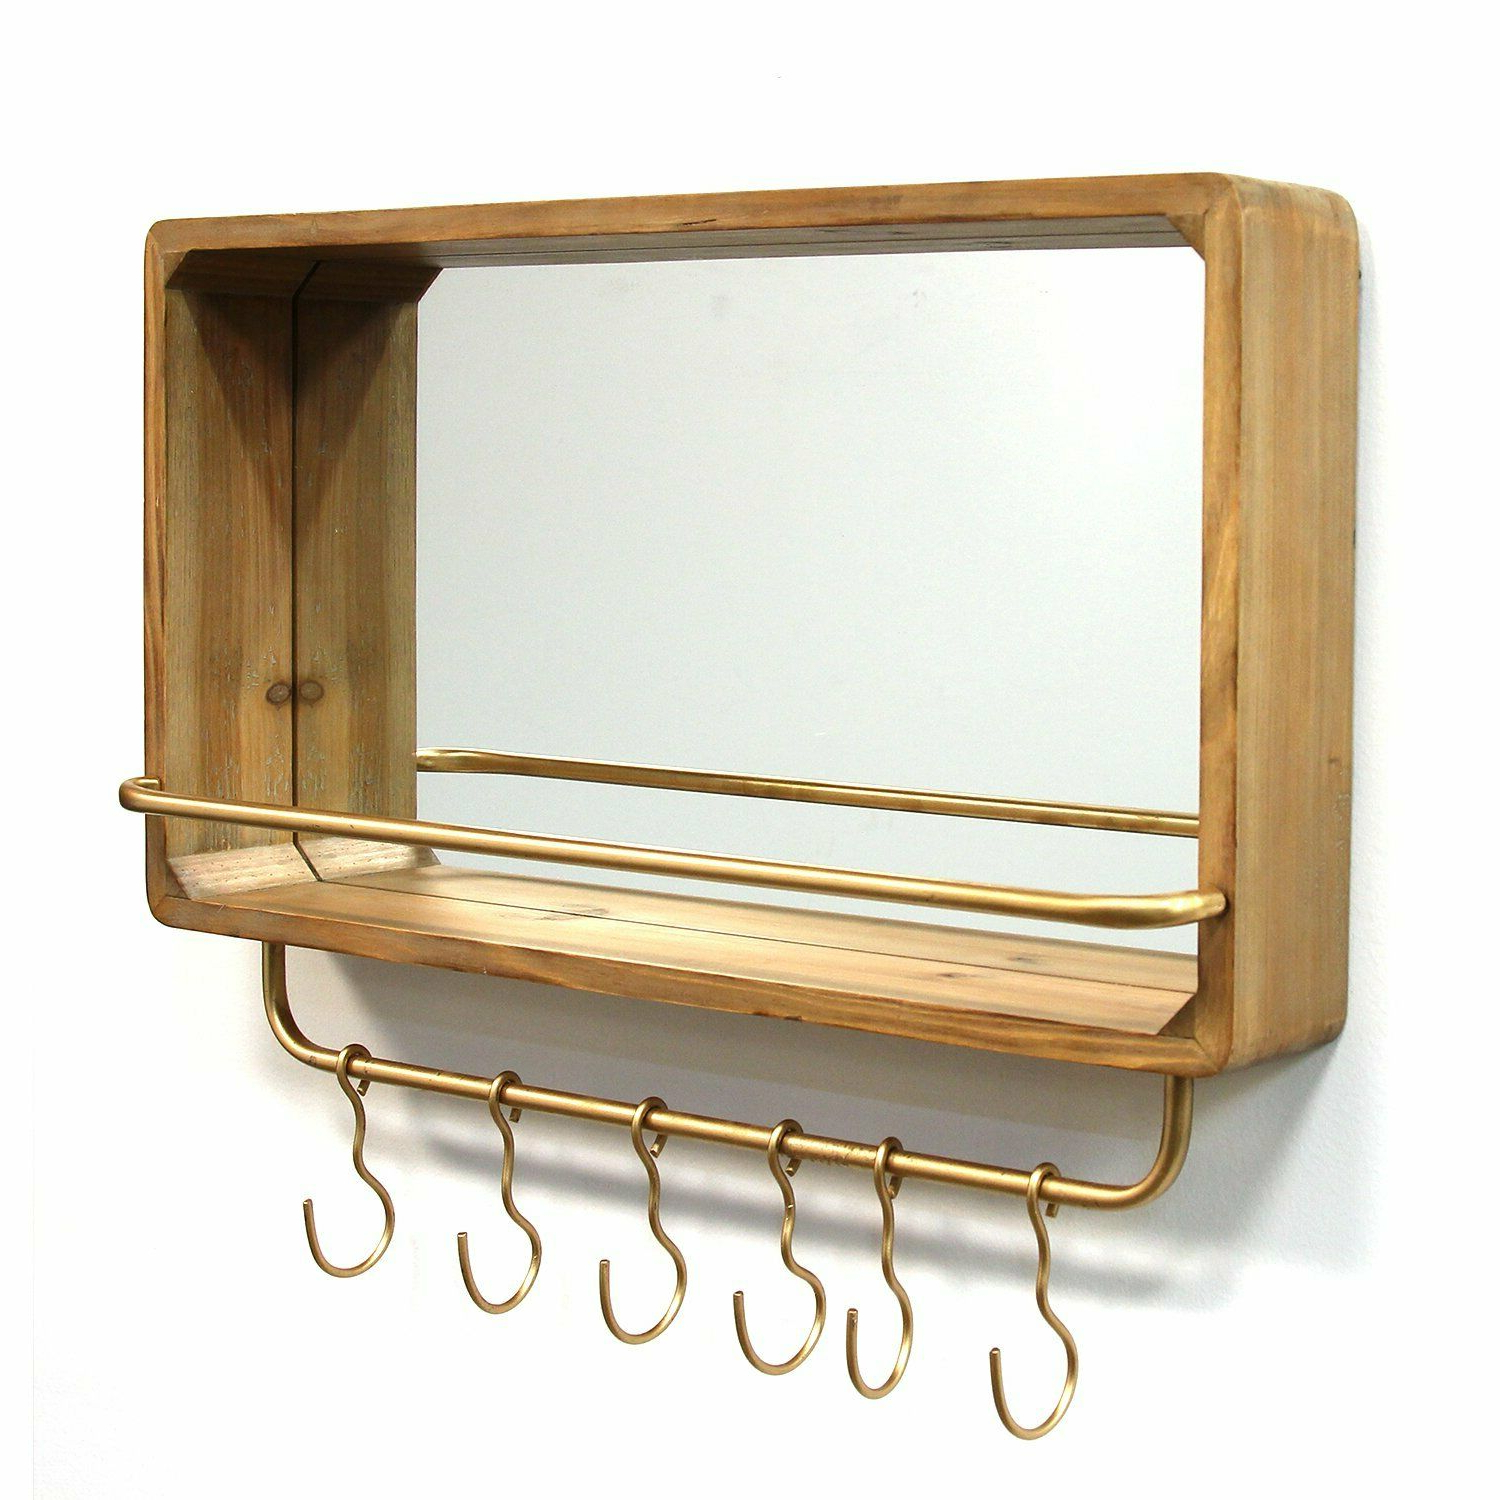 Trendy Wall Mirrors With Shelf And Hooks With Regard To Details About Wood Mirror With Shelf & Hooks Hanging Interior Wall Art Home  Decor (View 13 of 20)